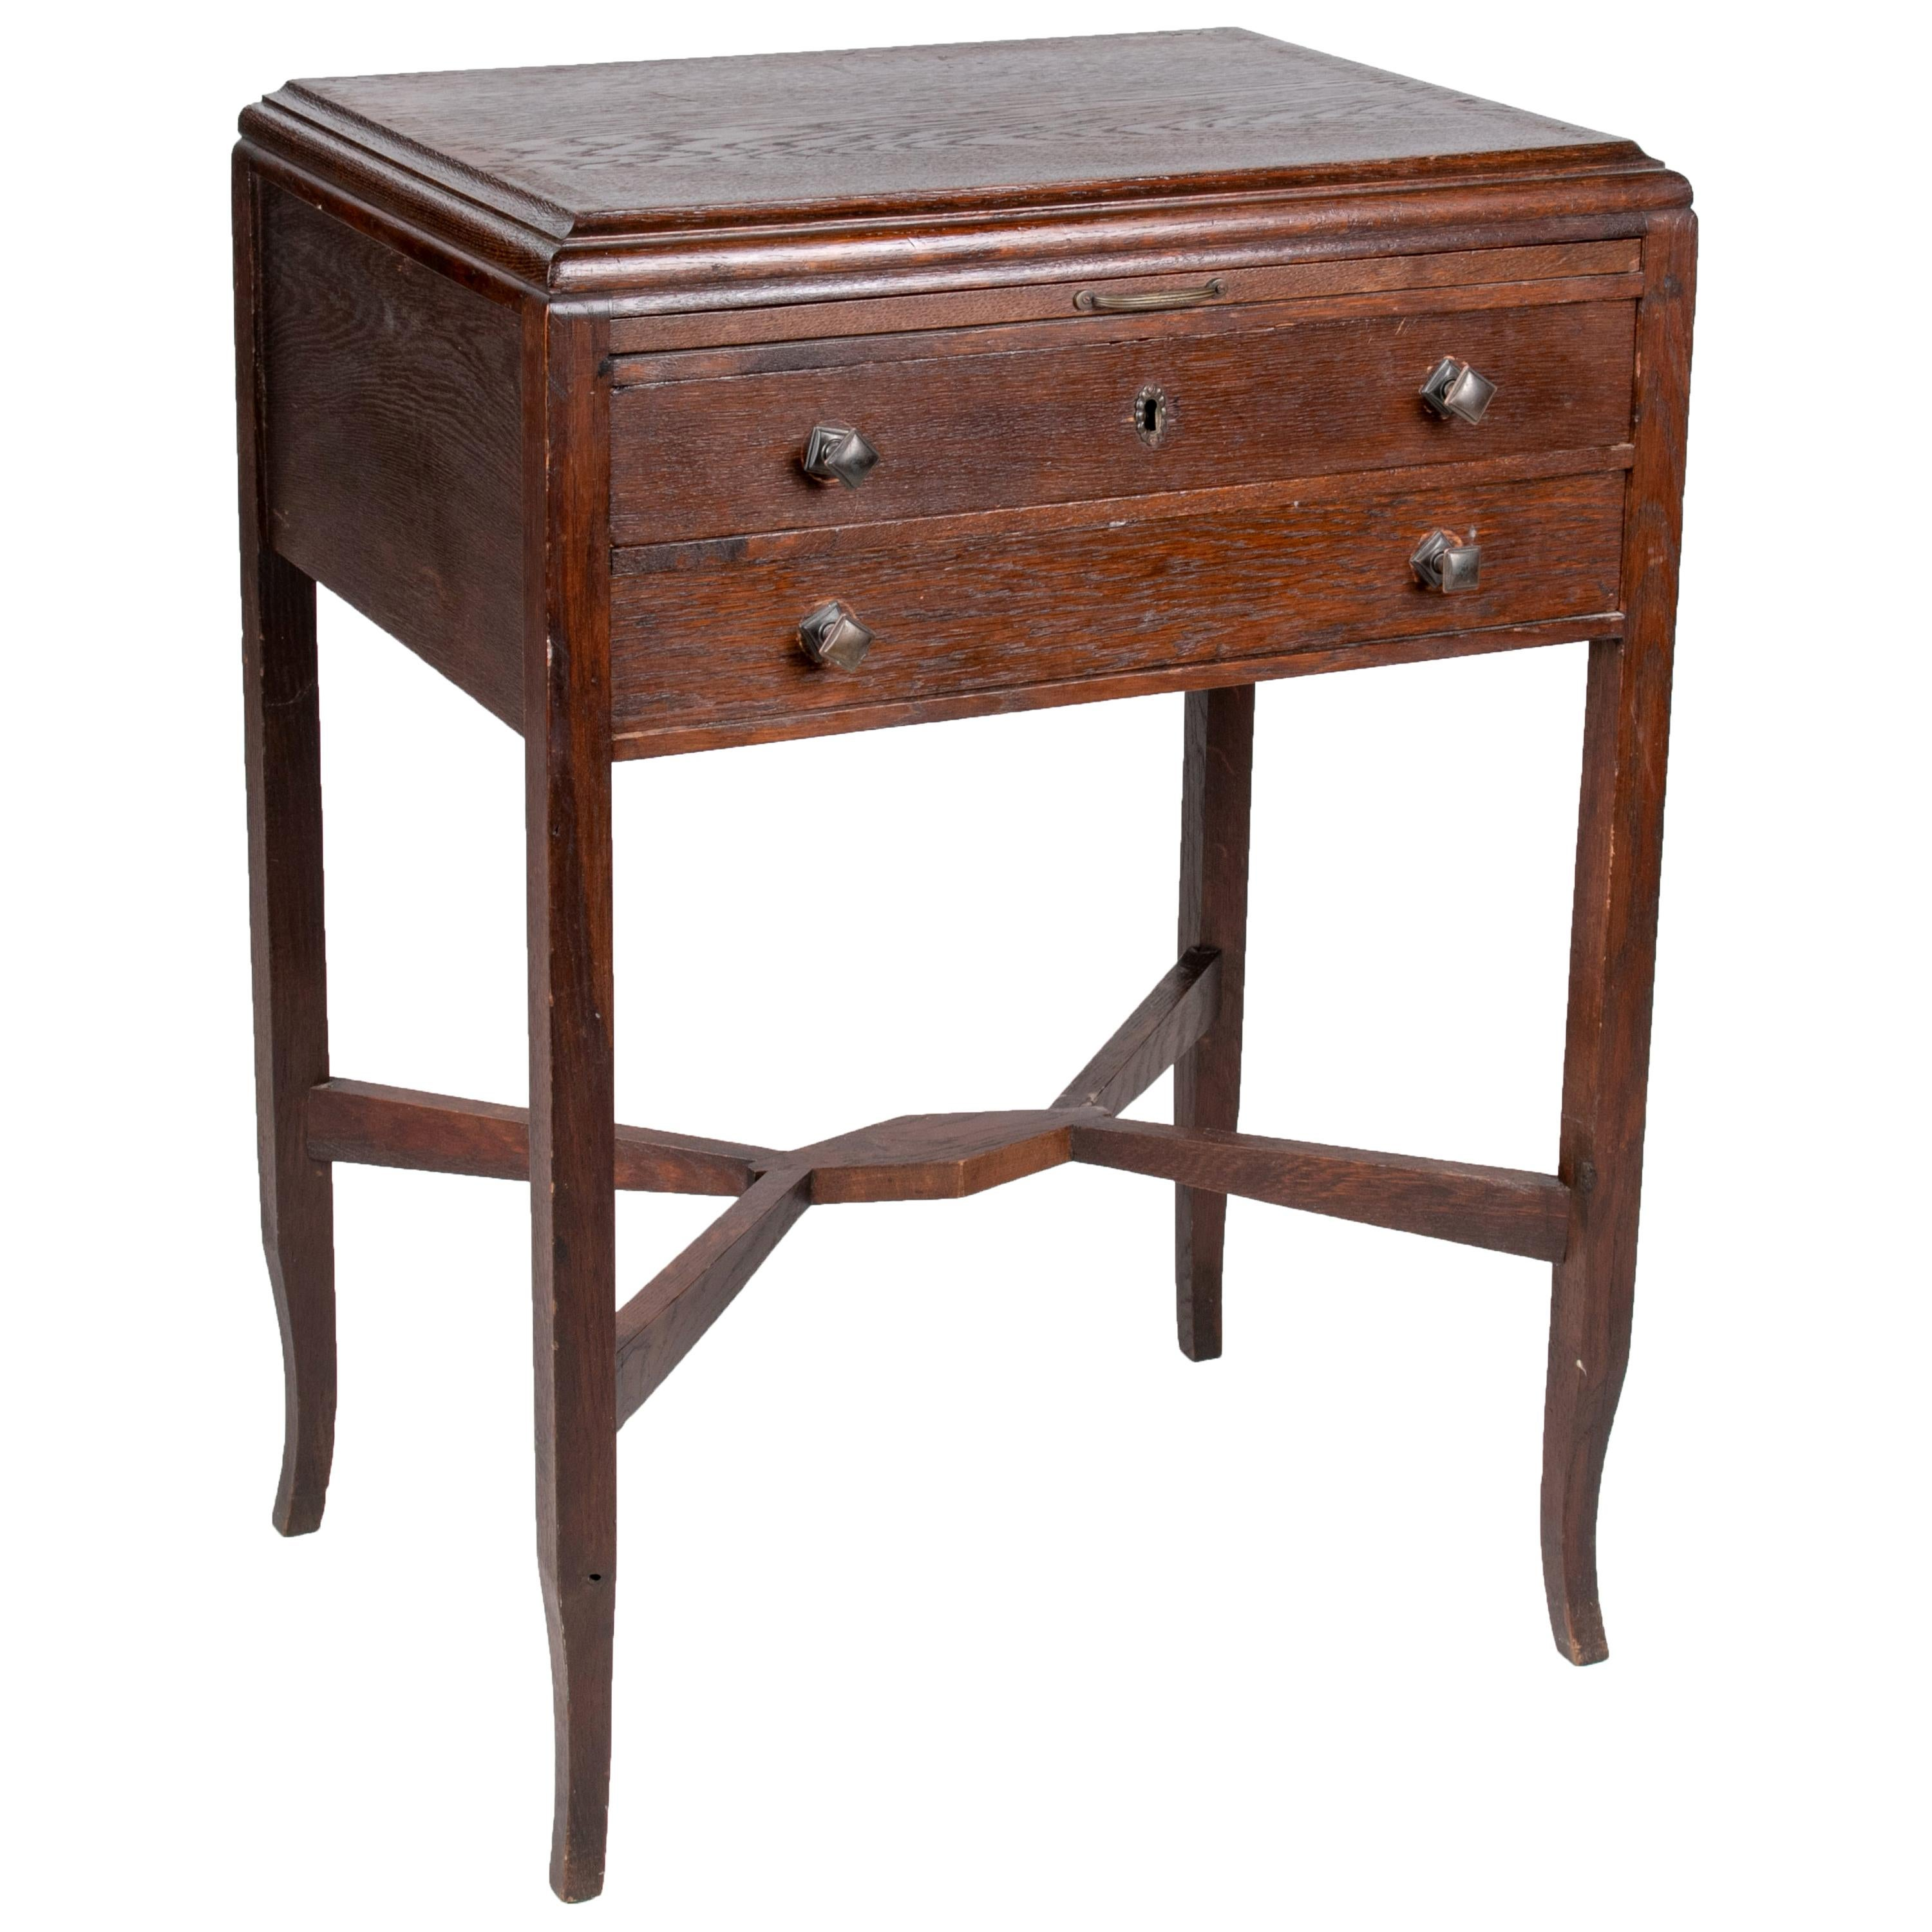 1930s French Two-Drawer Auxiliary Table